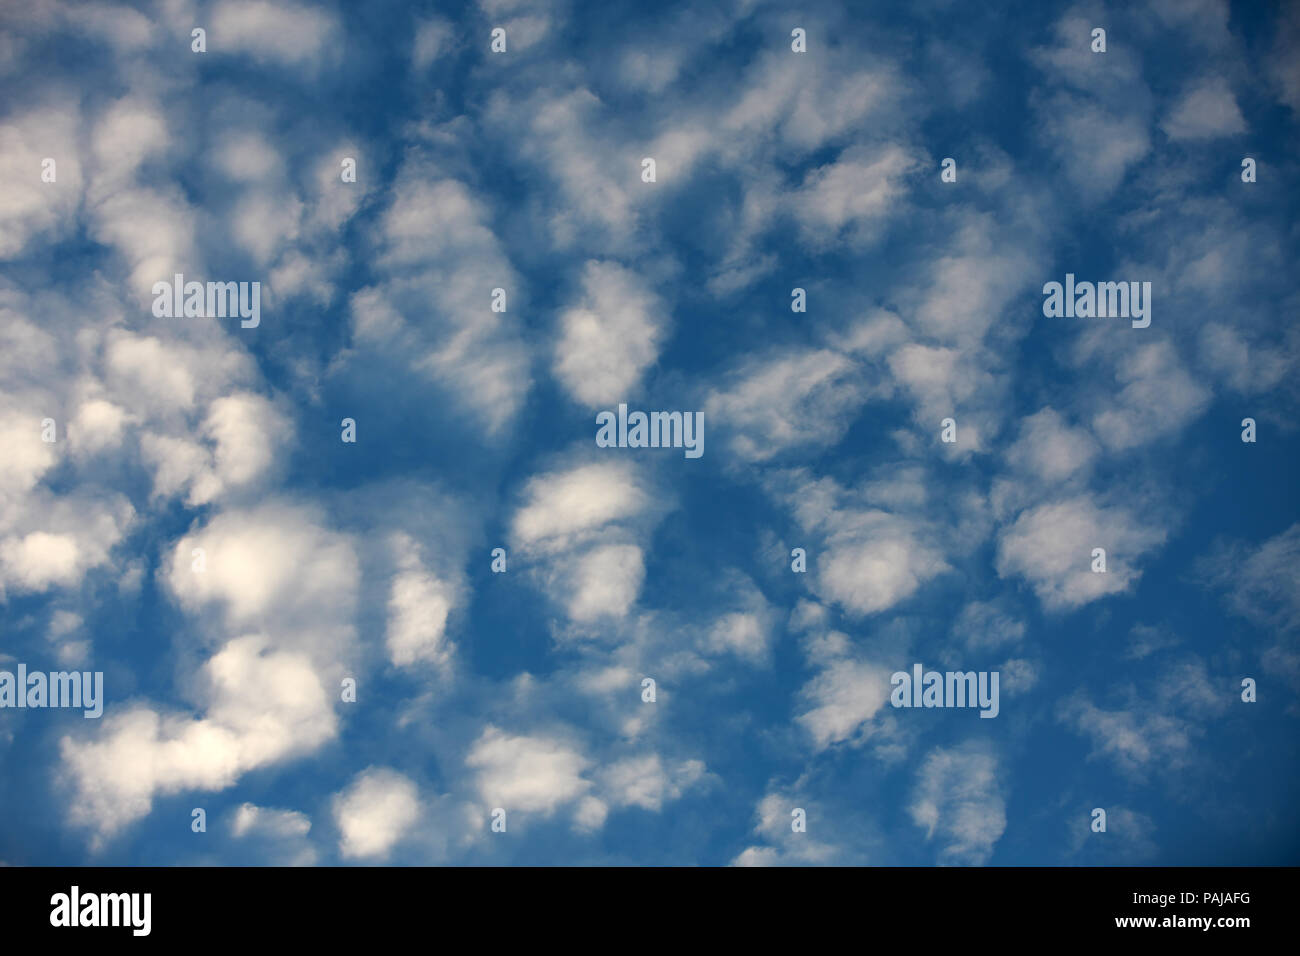 White Fair-weather clouds on a blue sky - Stock Image